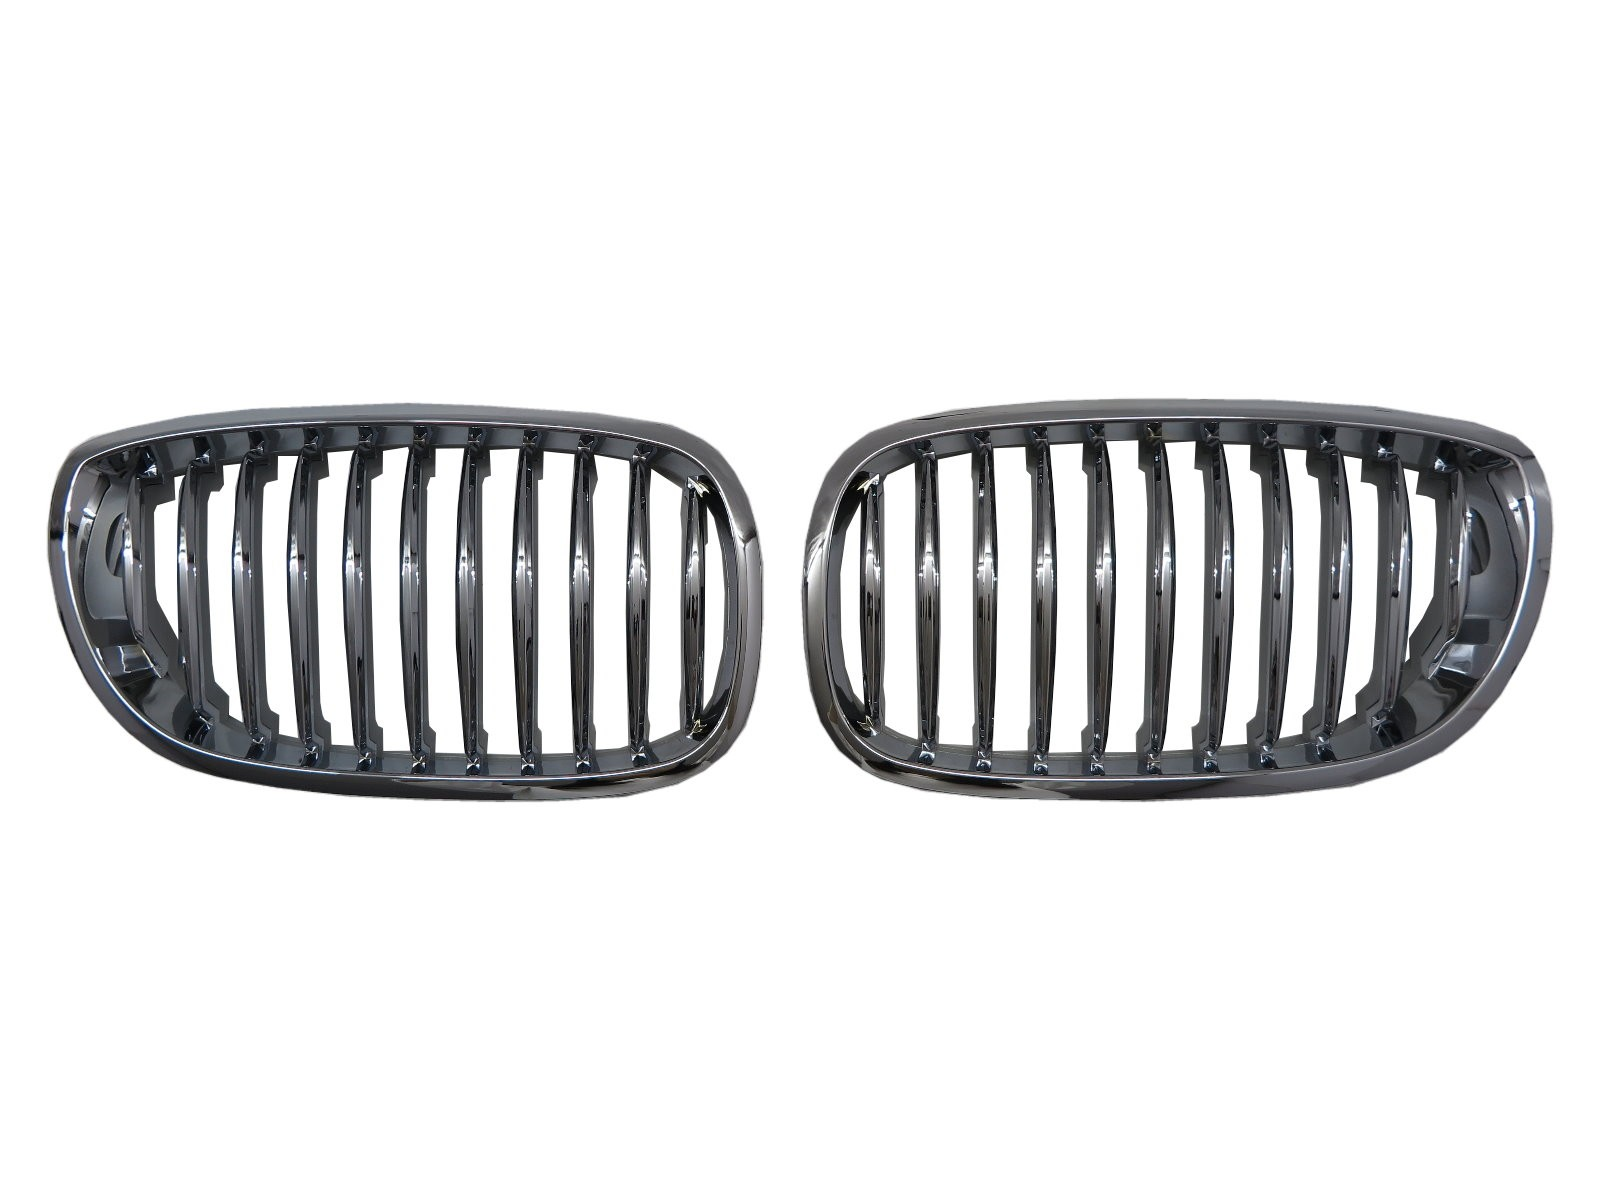 CrazyTheGod 3-Series E46 2002-2005 FACELIFT Coupe/Convertible 2D/3D GRILLE/GRILL Chrome for BMW